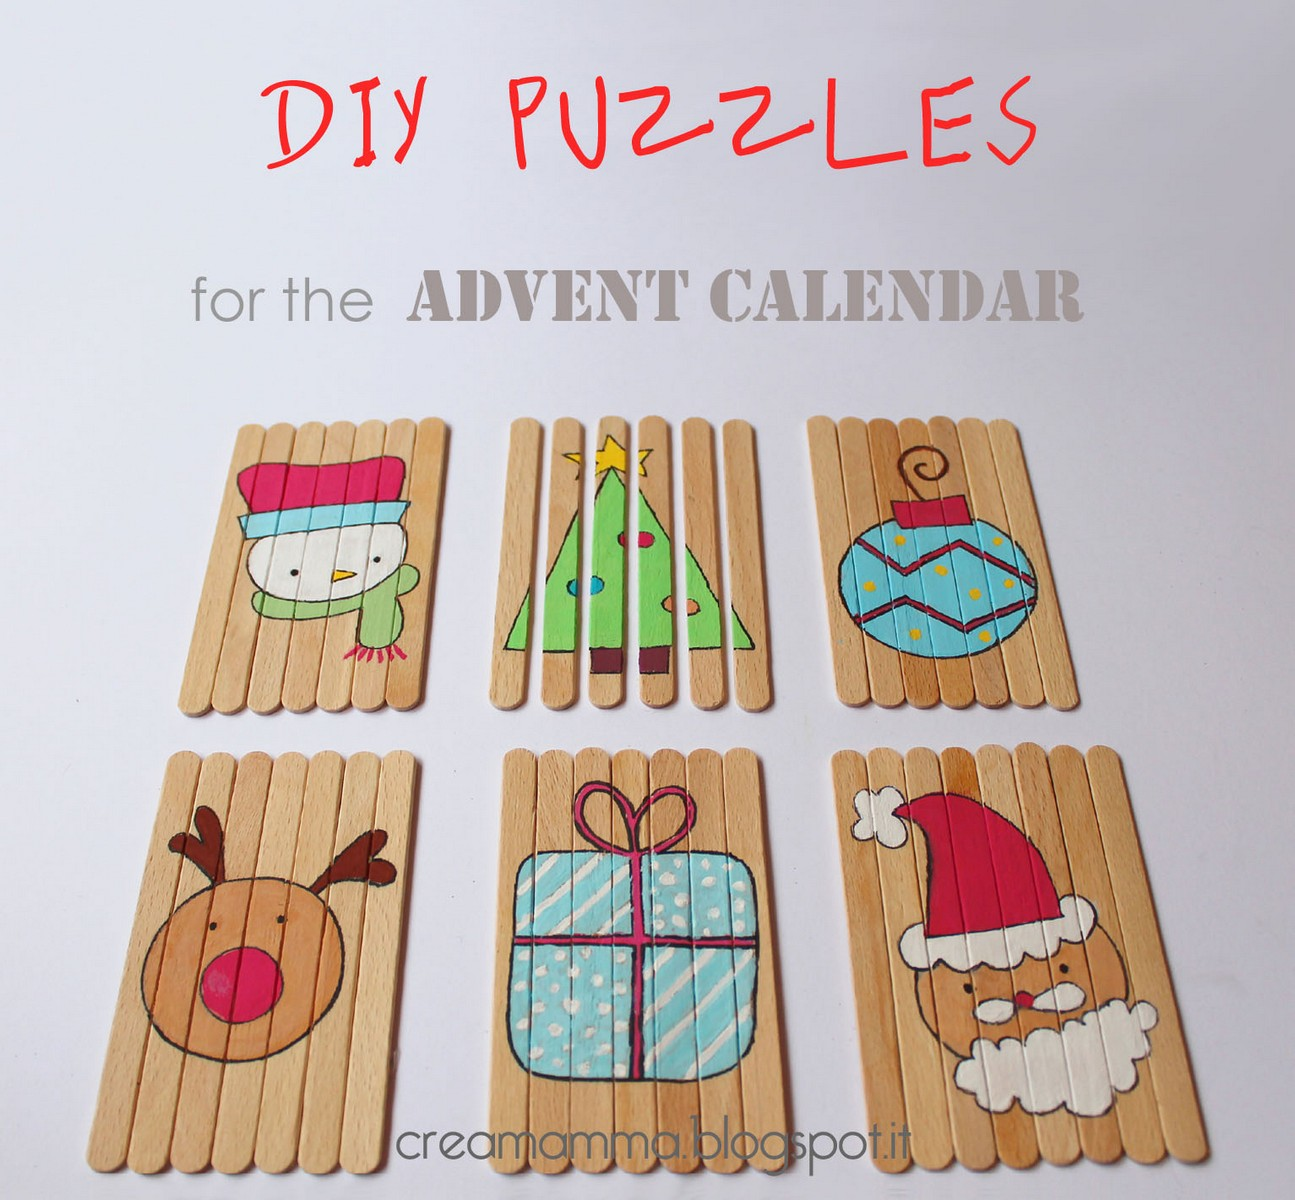 DIY Christmas puzzles of popsicle sticks